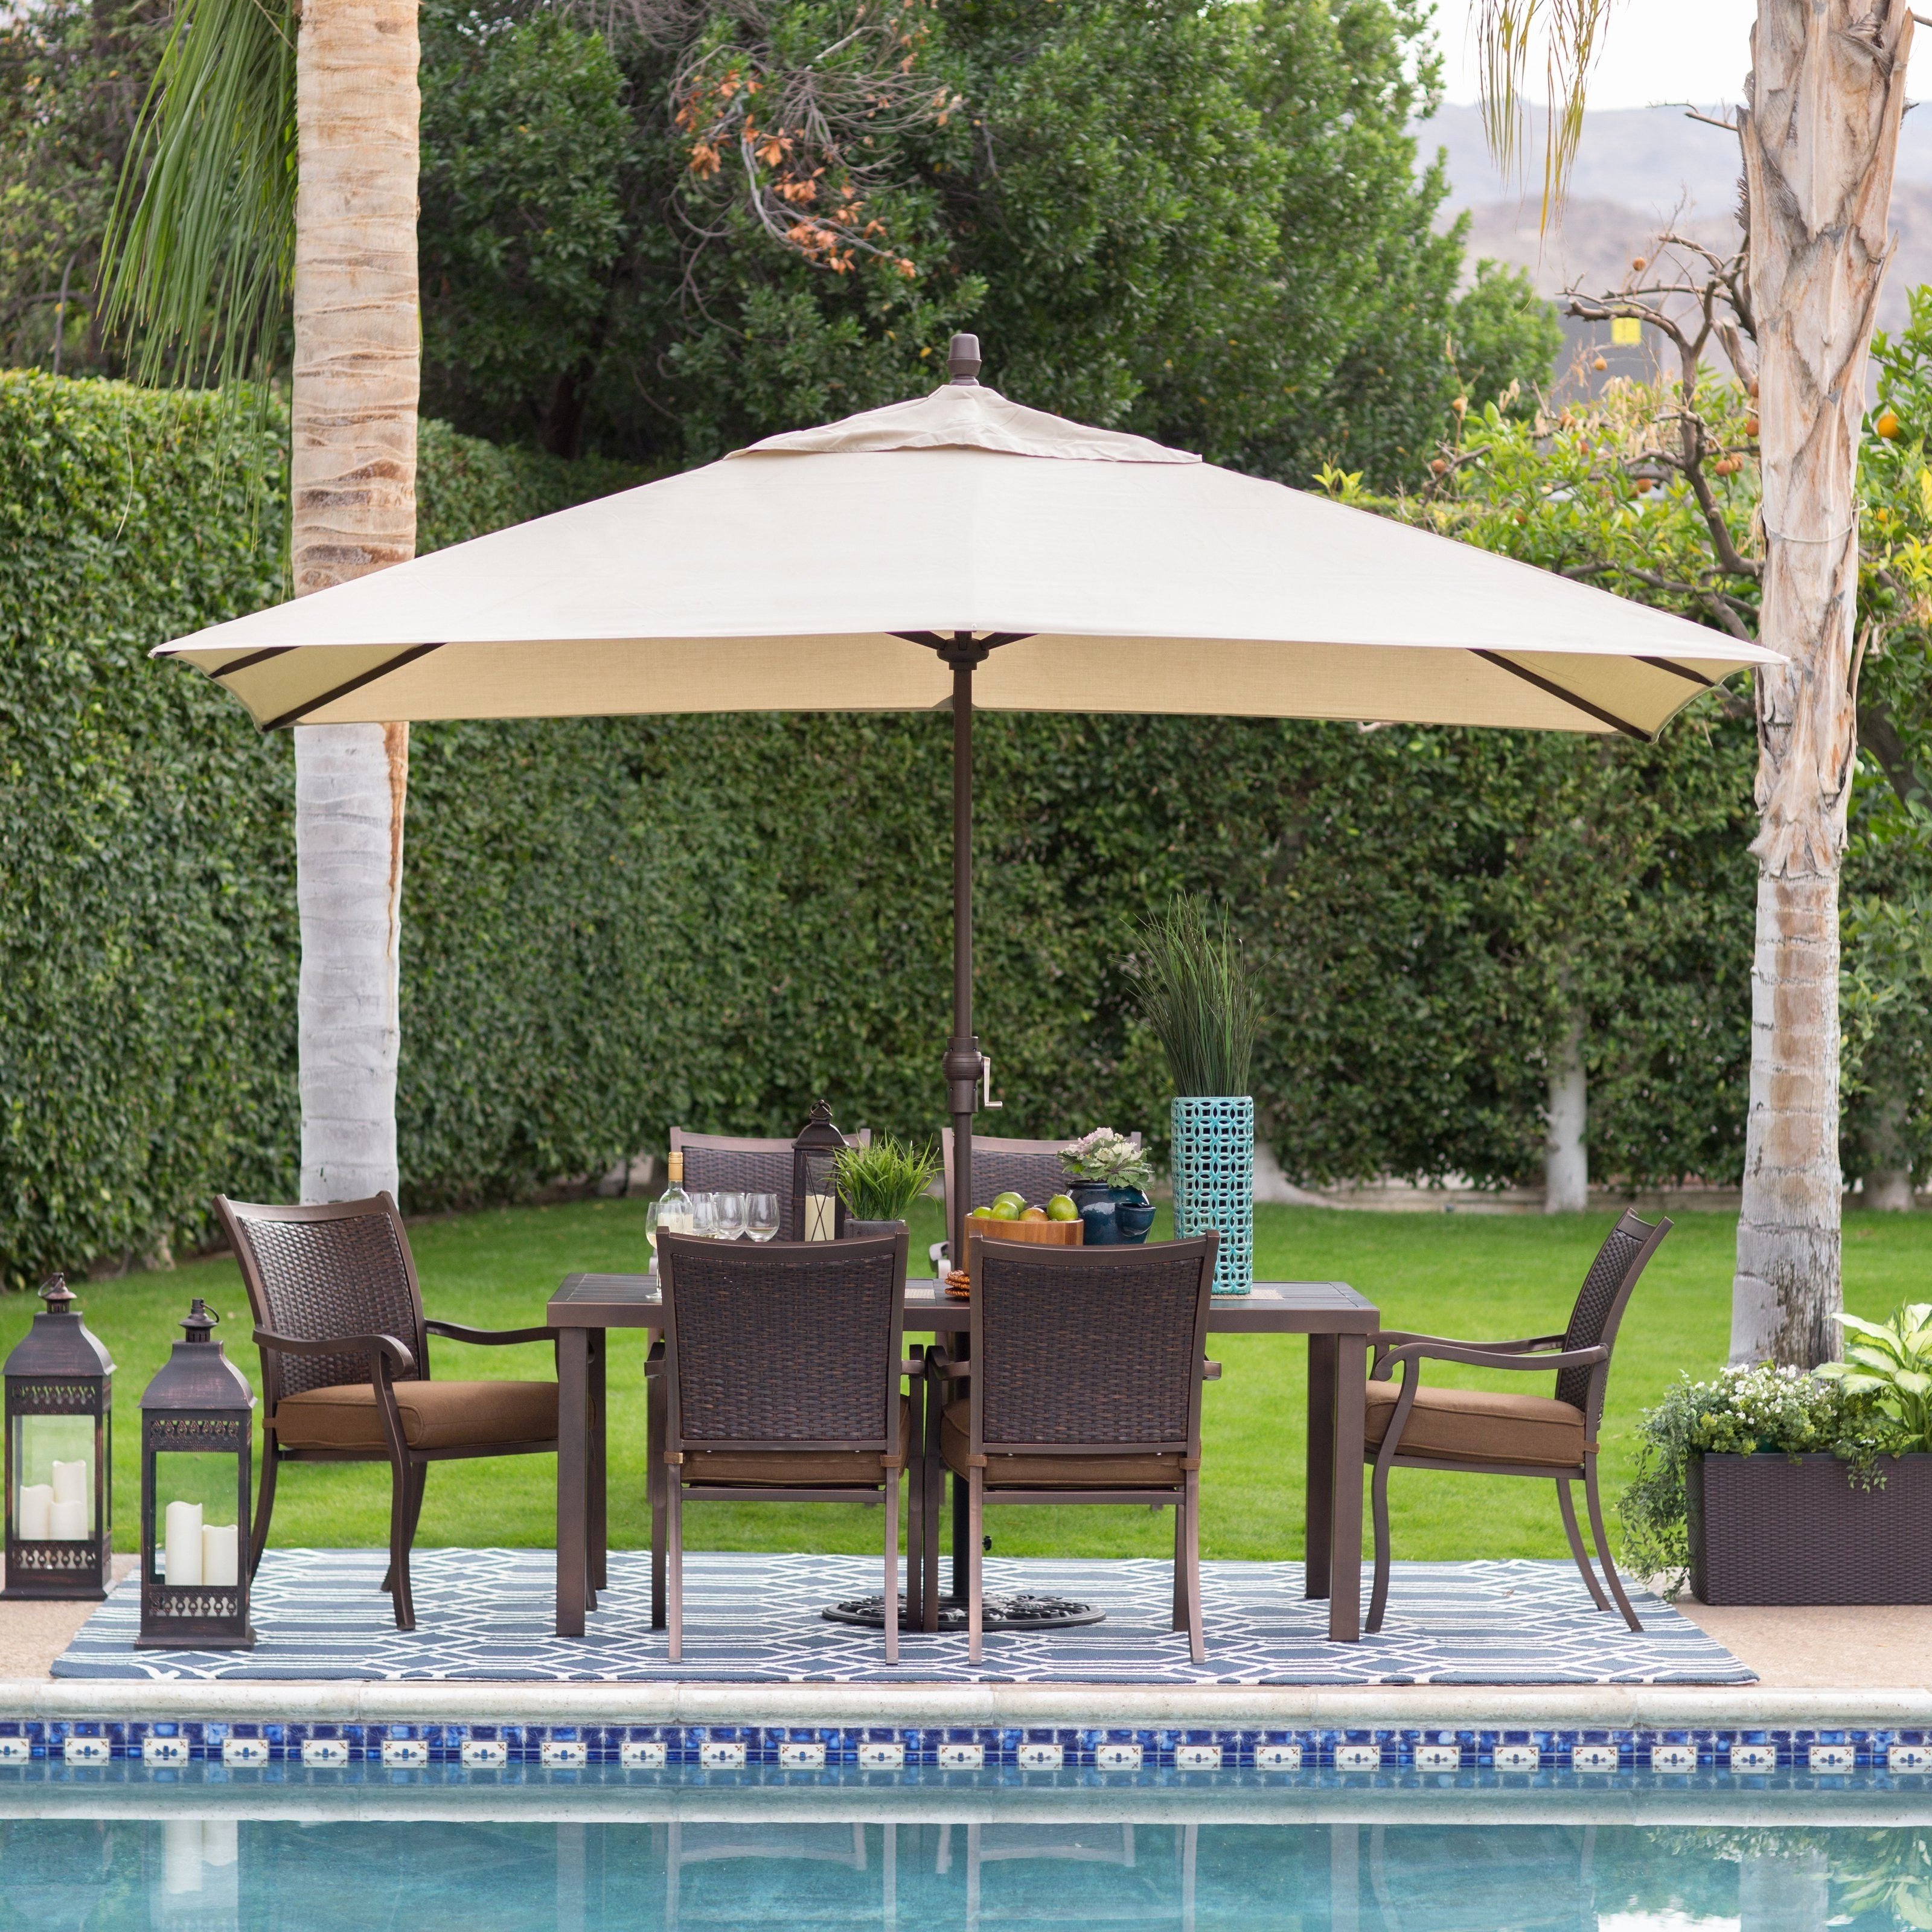 Trendy 11 Cantilever Patio Umbrella With Base Unique 30 Fresh 11 Ft Patio Intended For 11 Ft Patio Umbrellas (View 16 of 20)